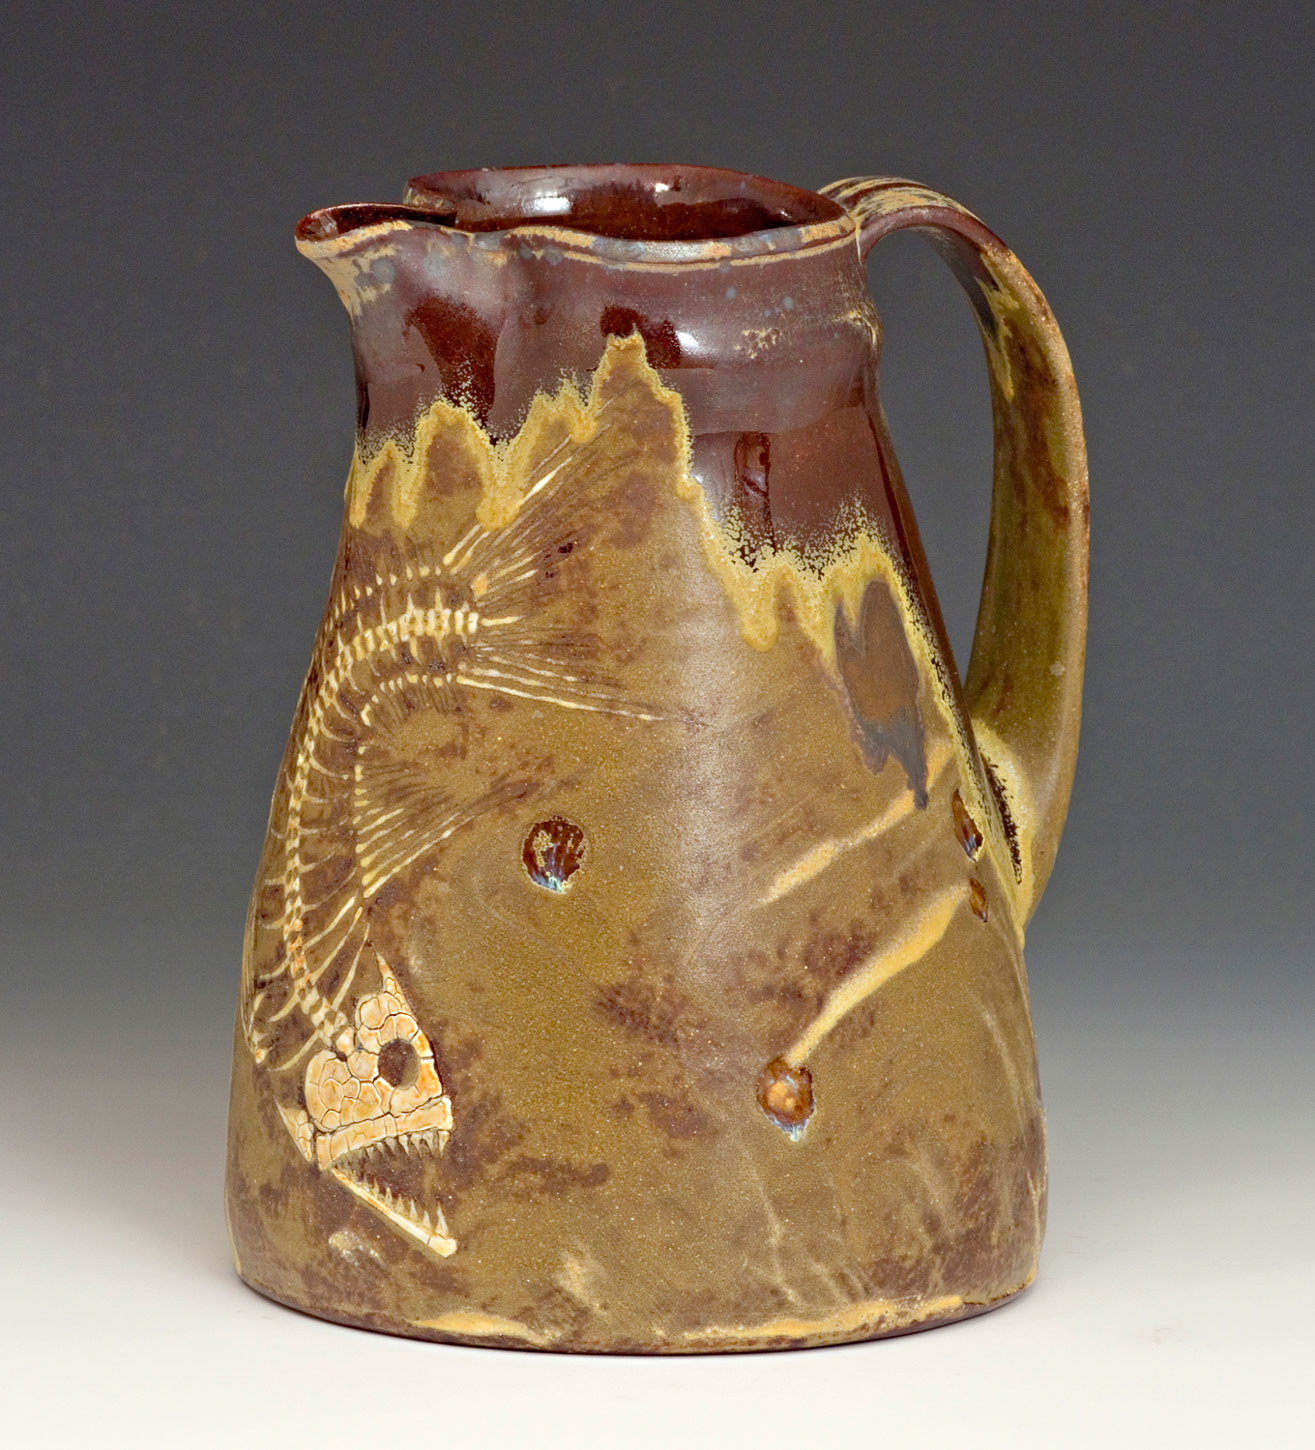 Ceramic-Art-Fossil-Fish-Pitcher-Bruce-Gholson.jpg